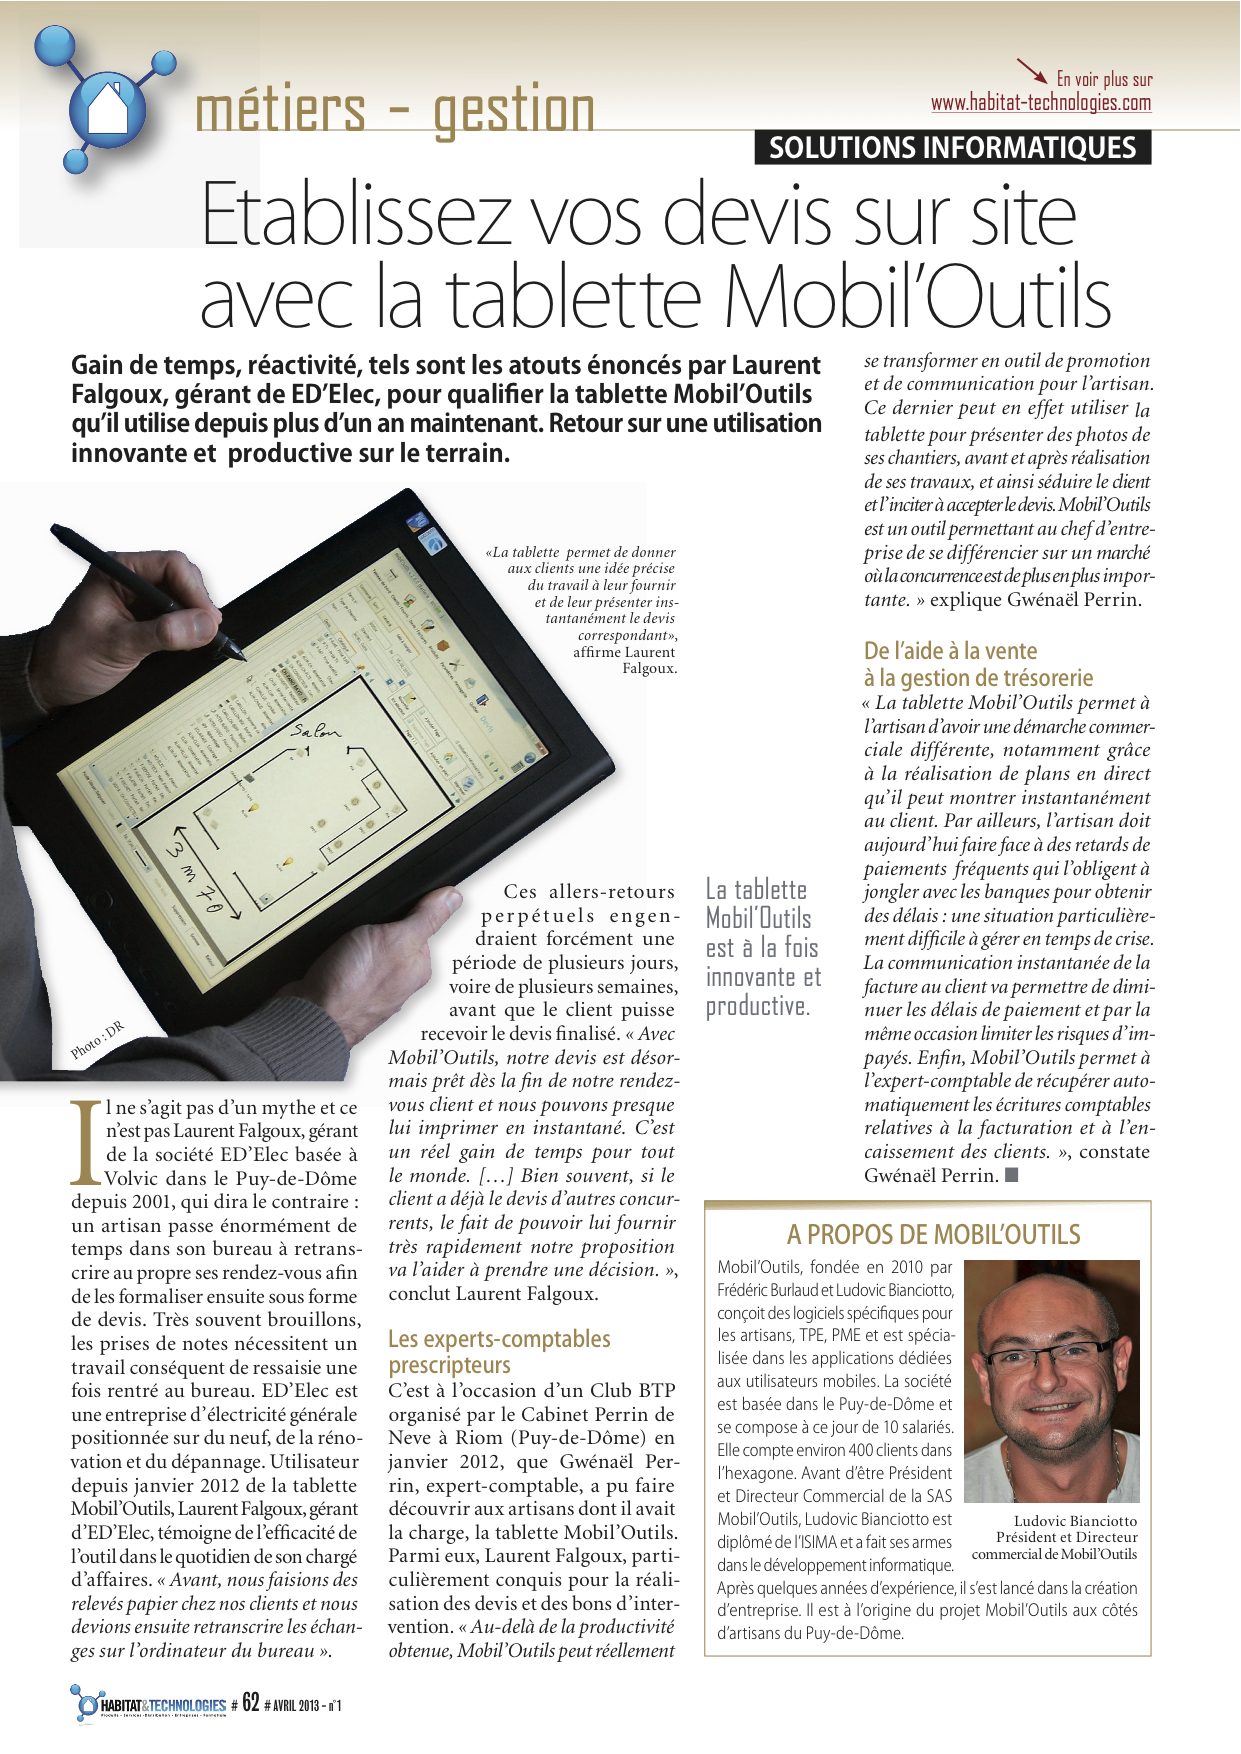 Article d'Habitat & Technologies